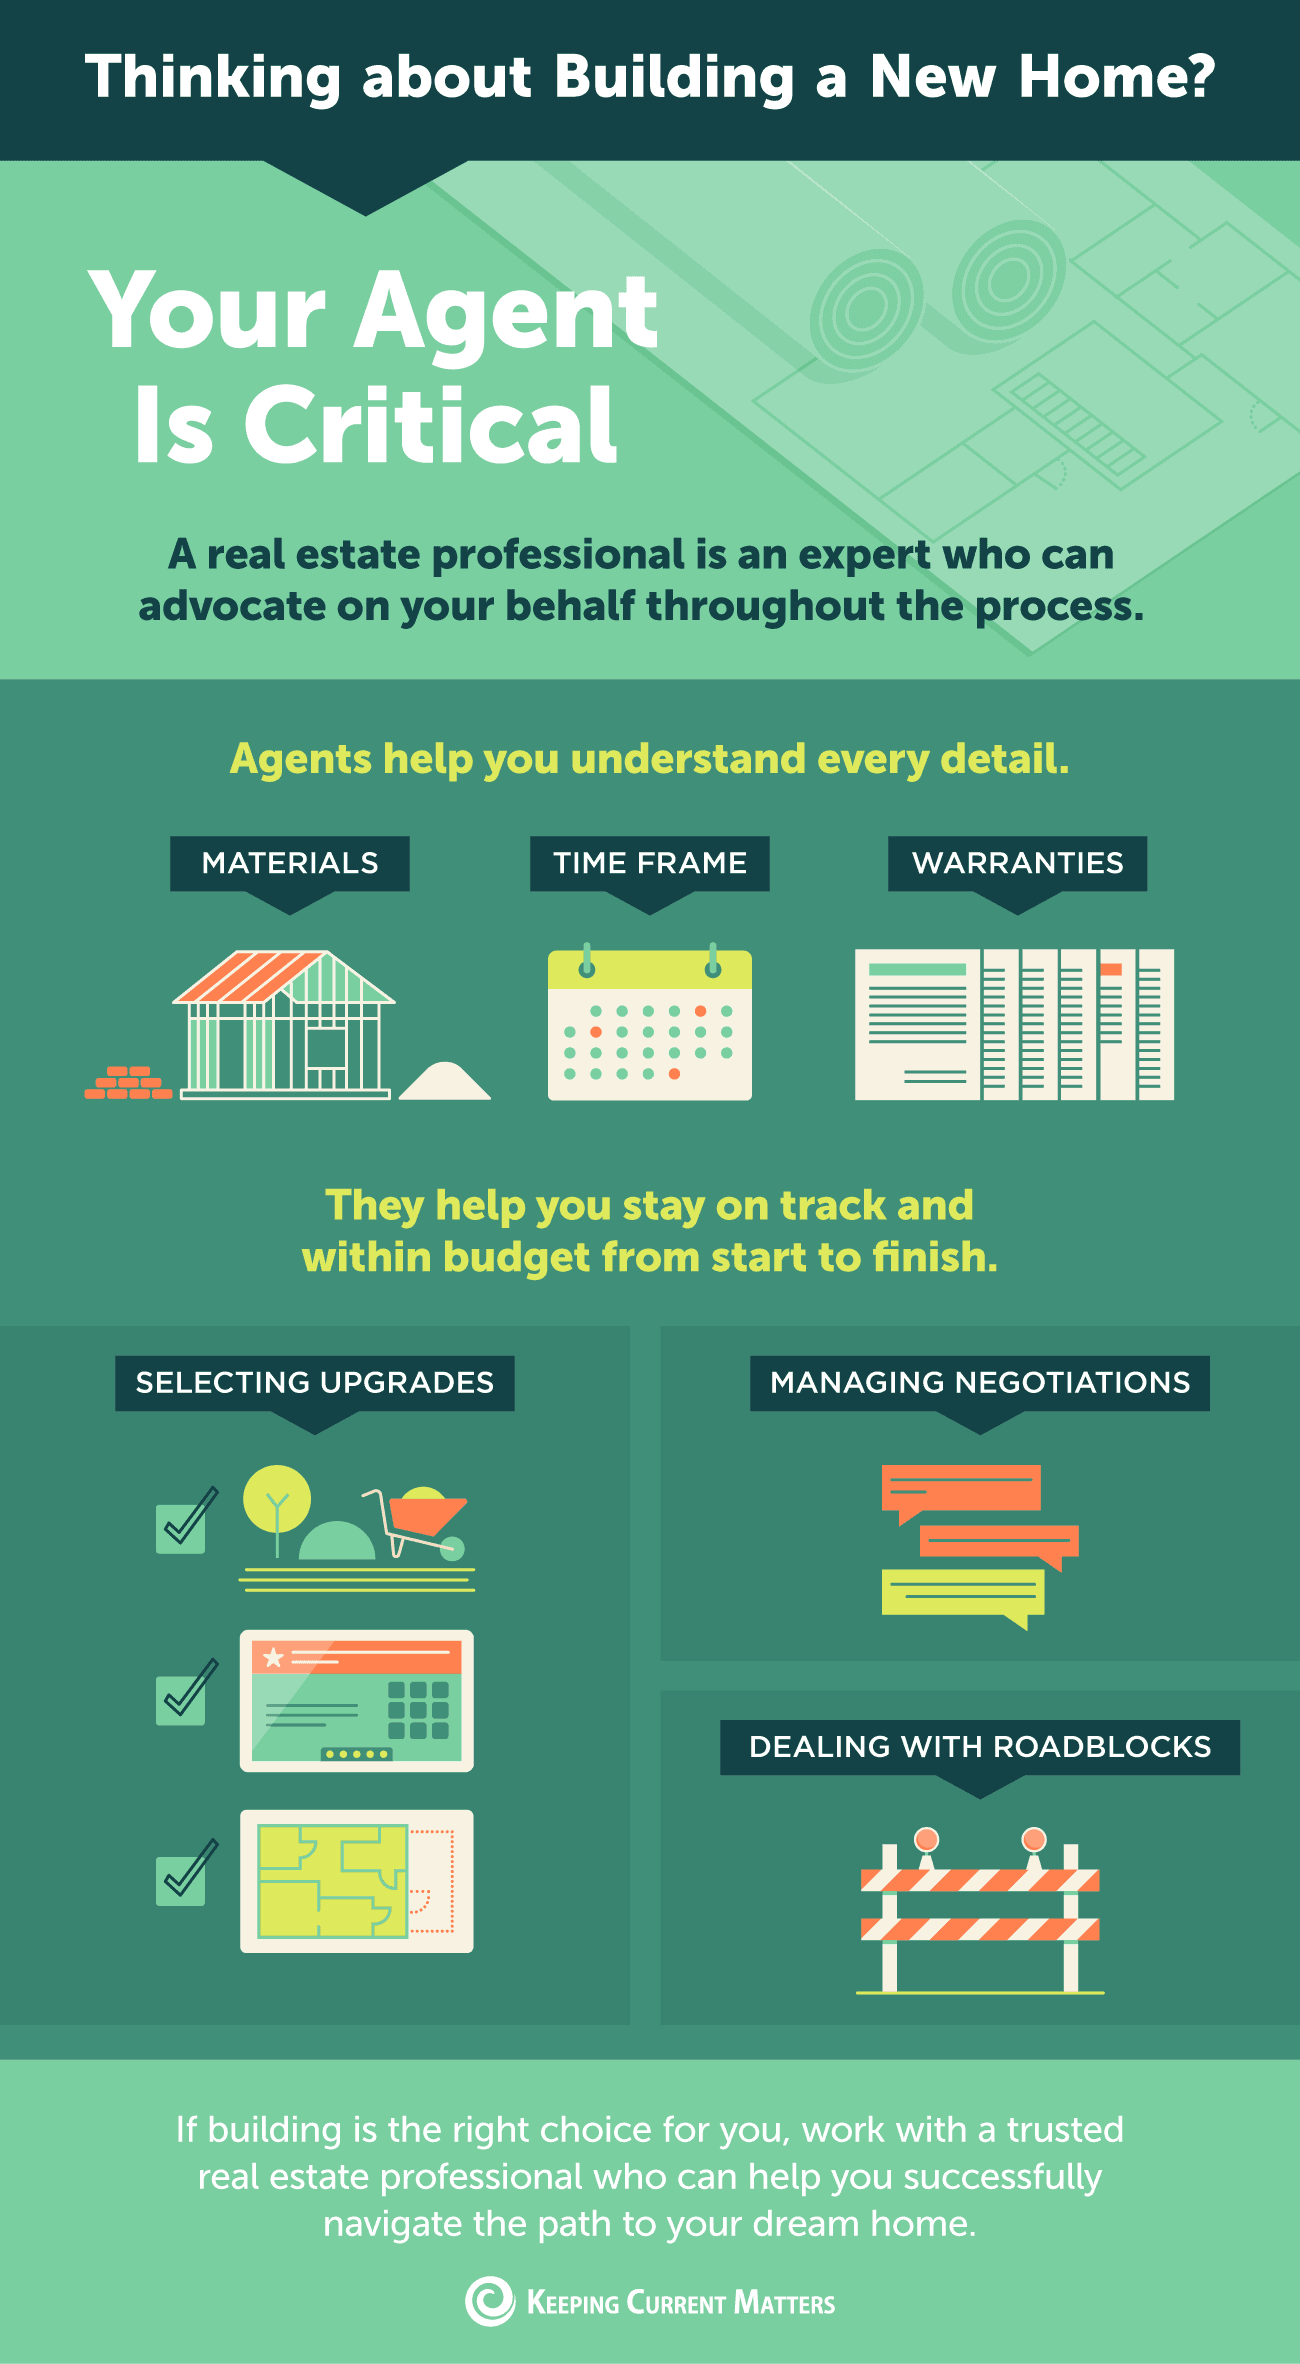 Thinking about Building a New Home? Your Agent Is Critical. [INFOGRAPHIC] | Keeping Current Matters